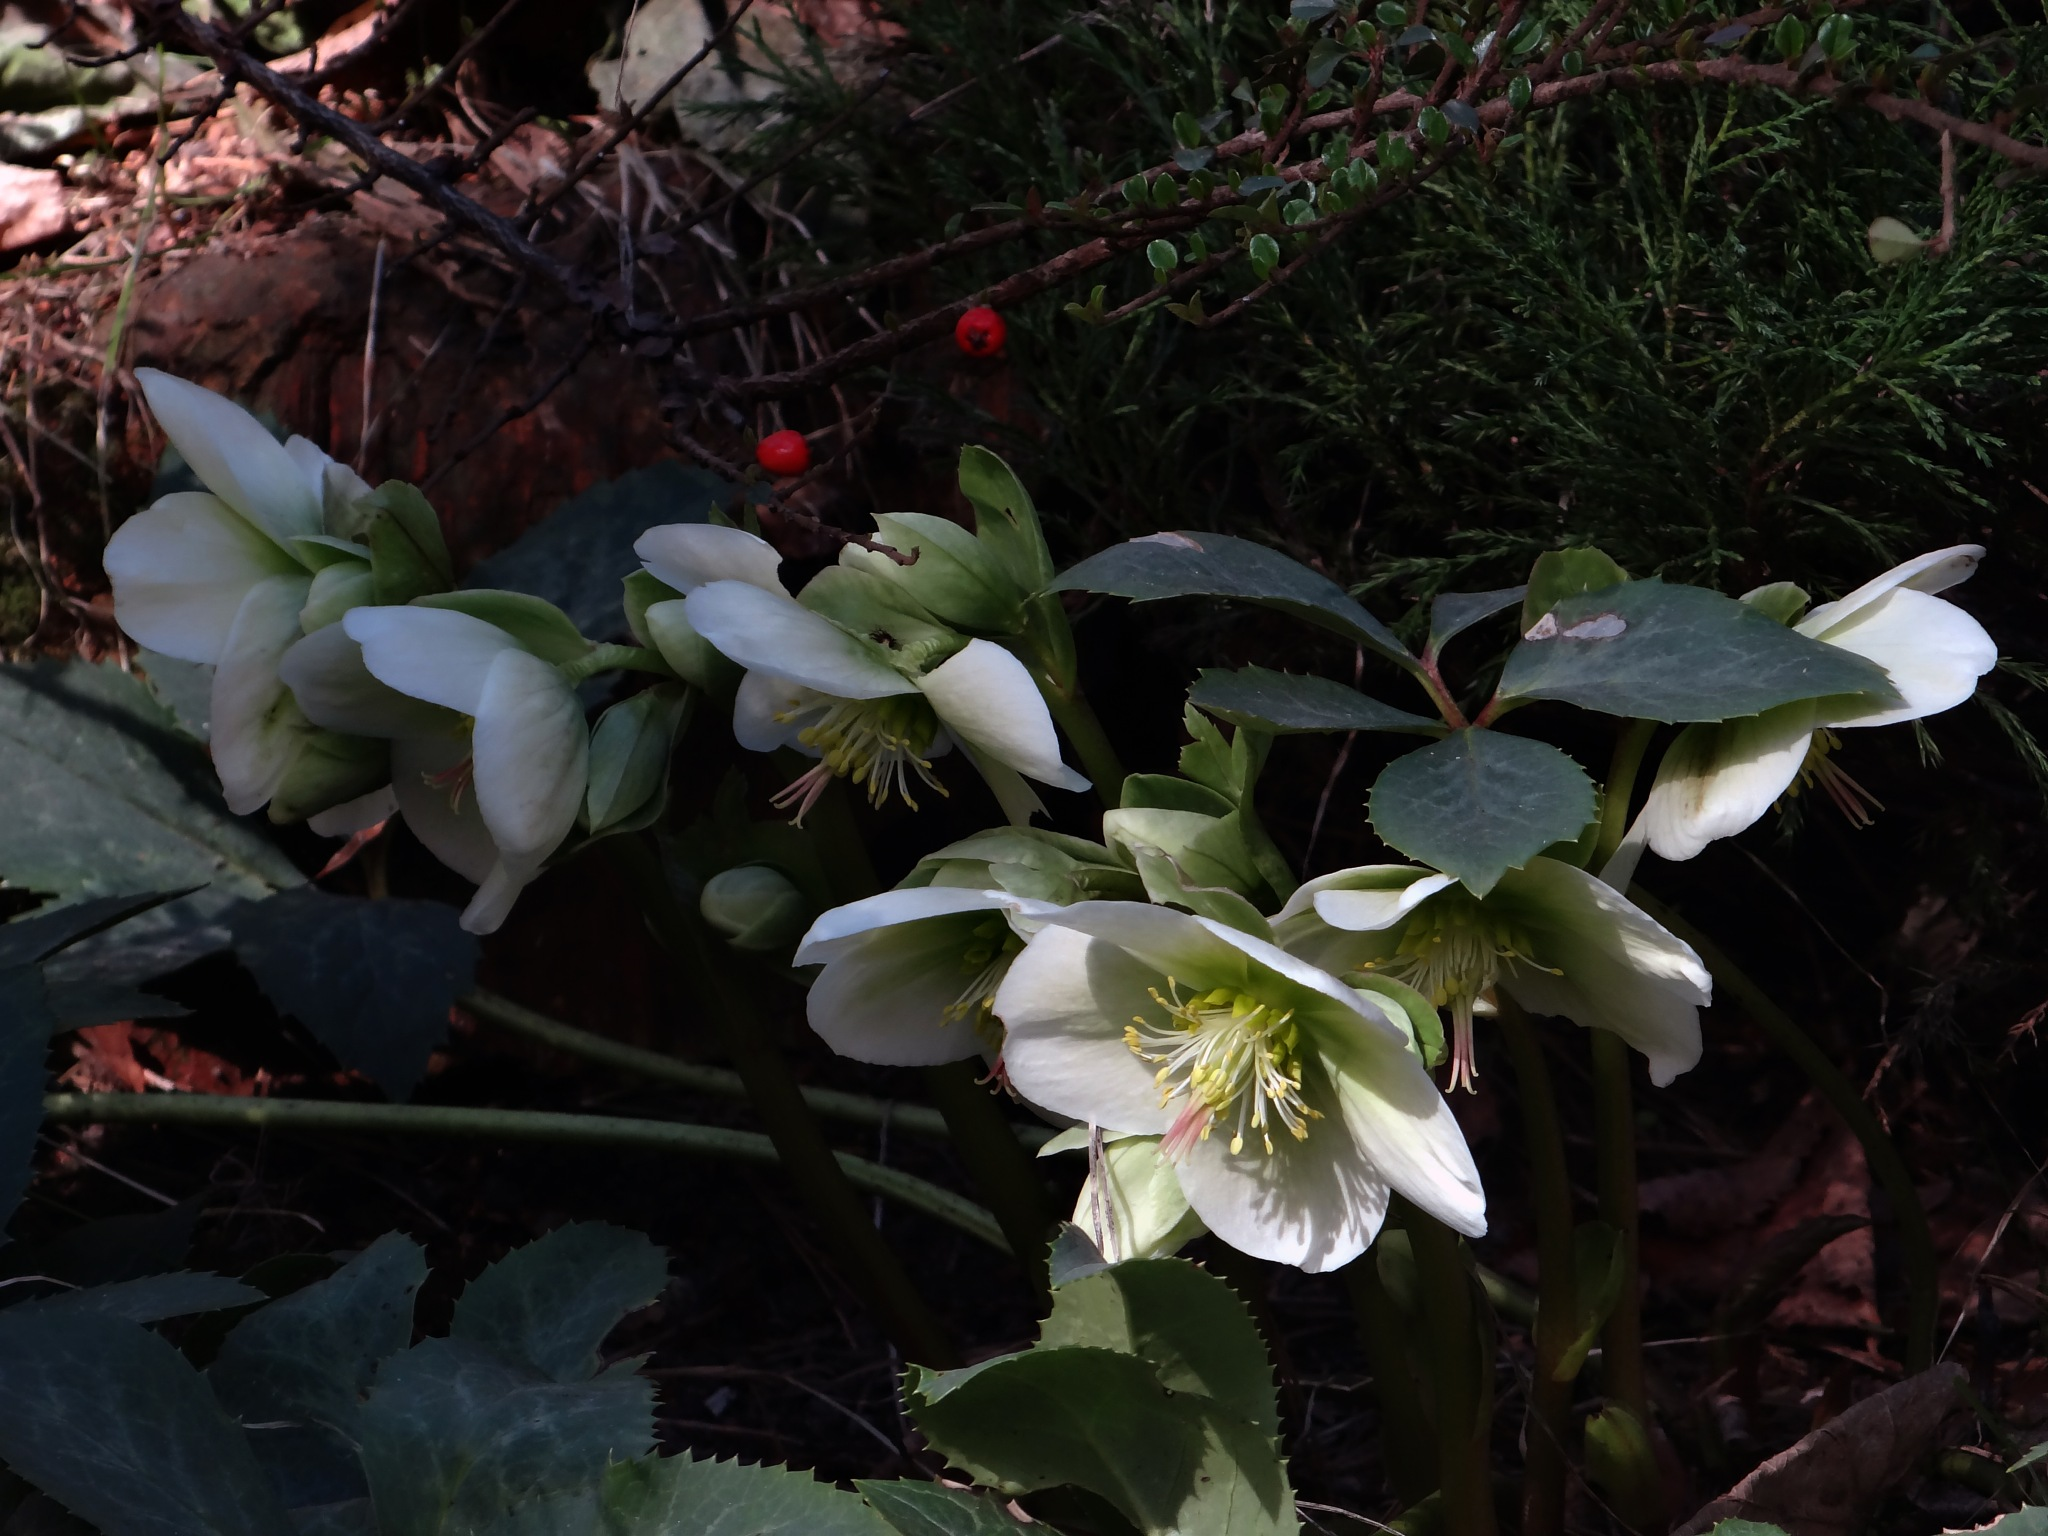 Christmas rose (black hellebore) in blossom - 'Twas early in May  by Alex  Falcon